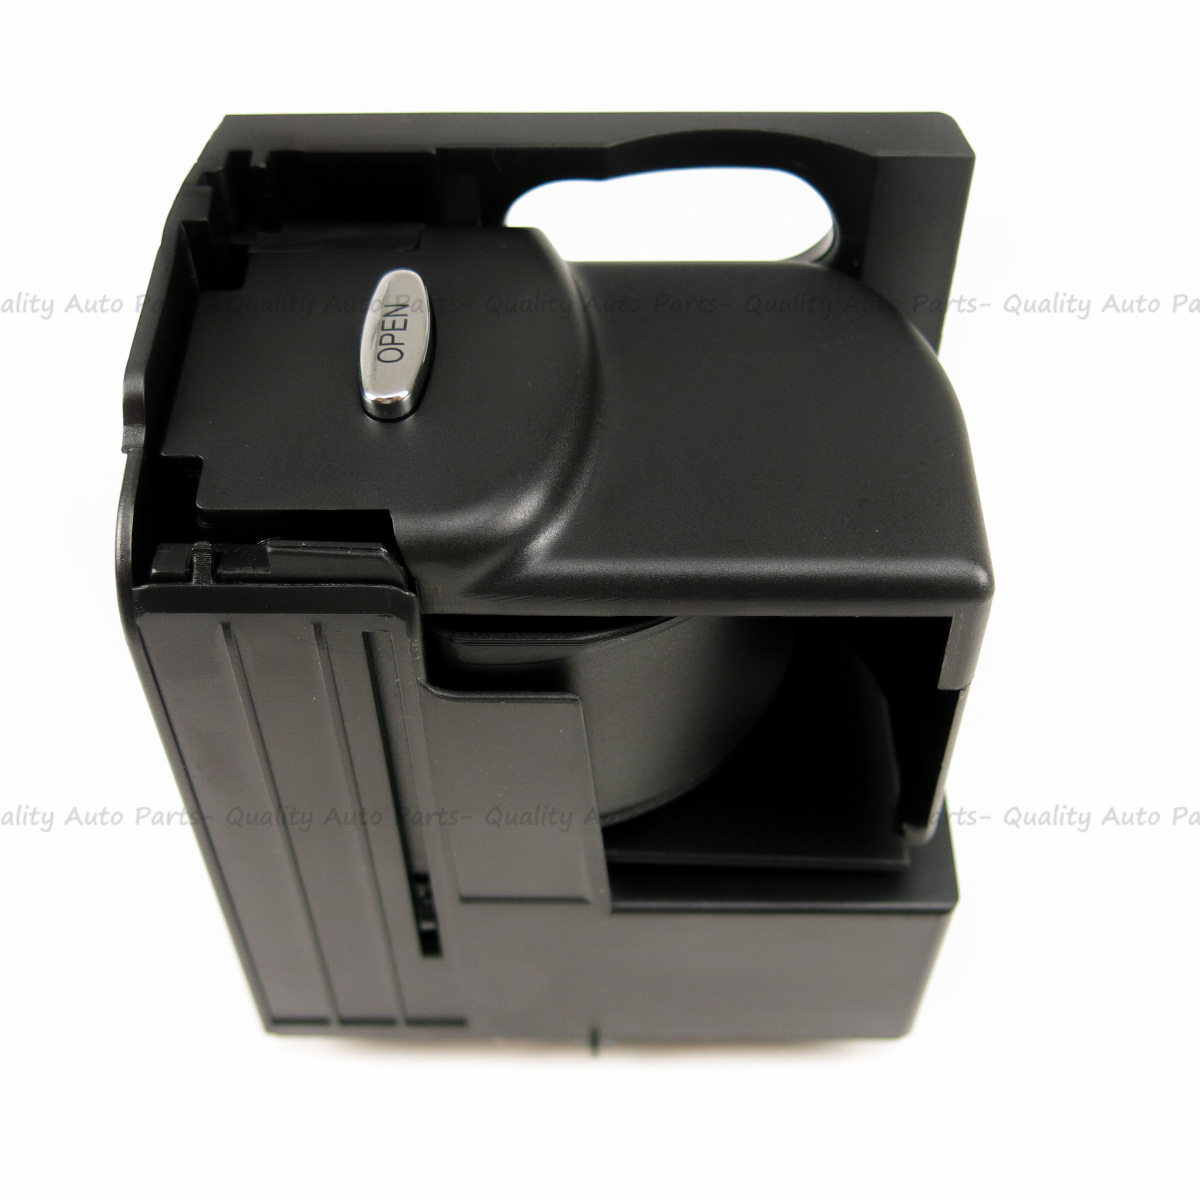 Mercedes benz cls c219 w211 s211 eclass cup holder for Mercedes benz cup